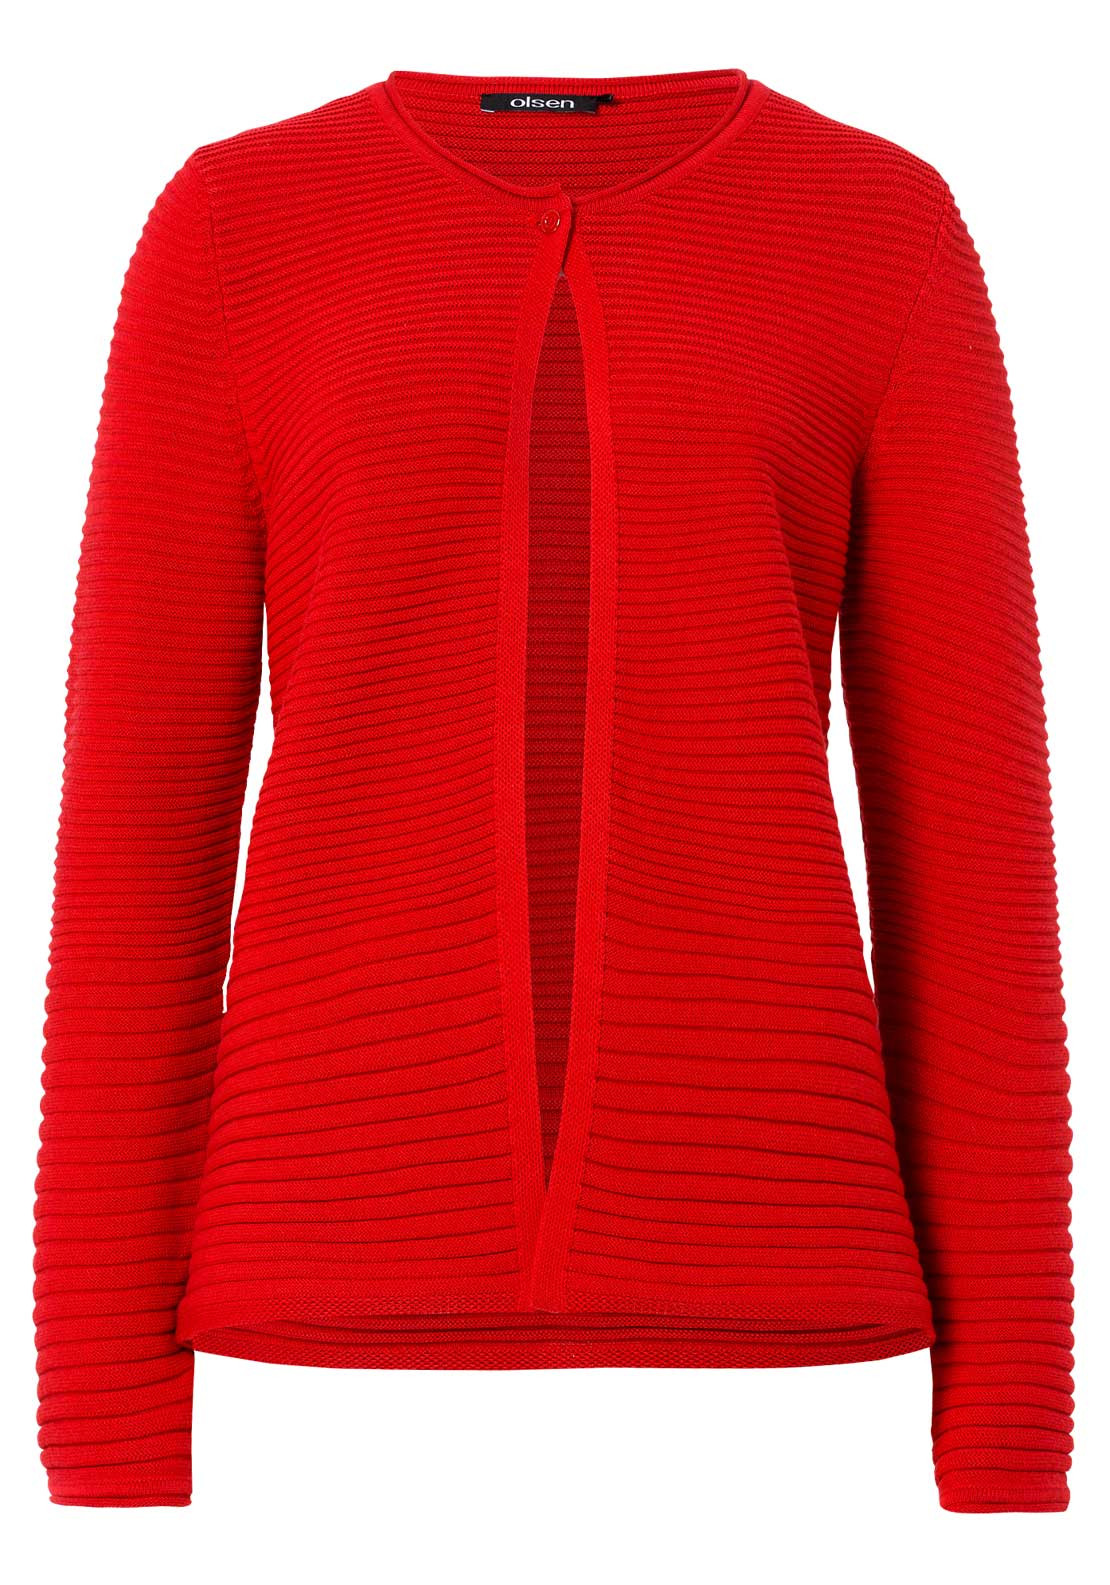 Olsen Relaxed Fitting Cardigan Red